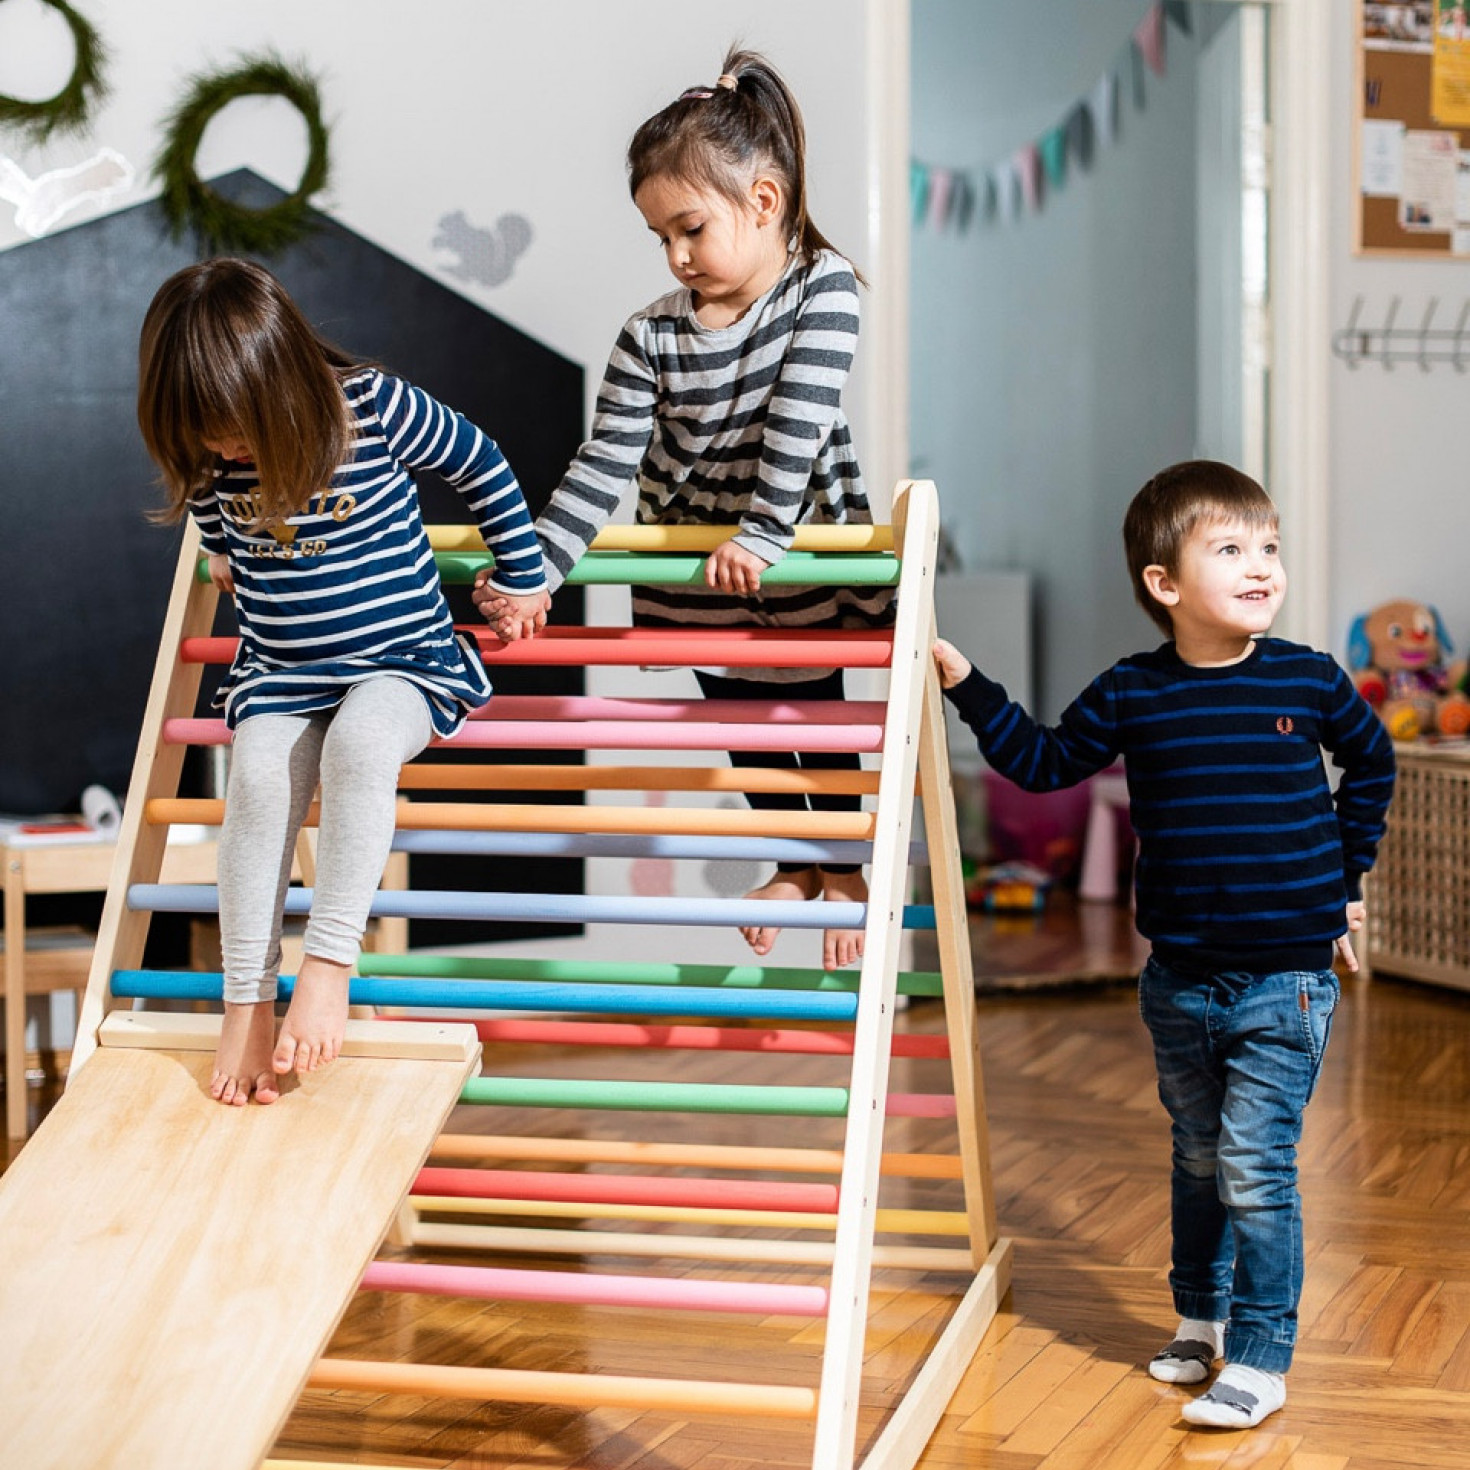 Children playing on a wooden climbing frame for toddlers